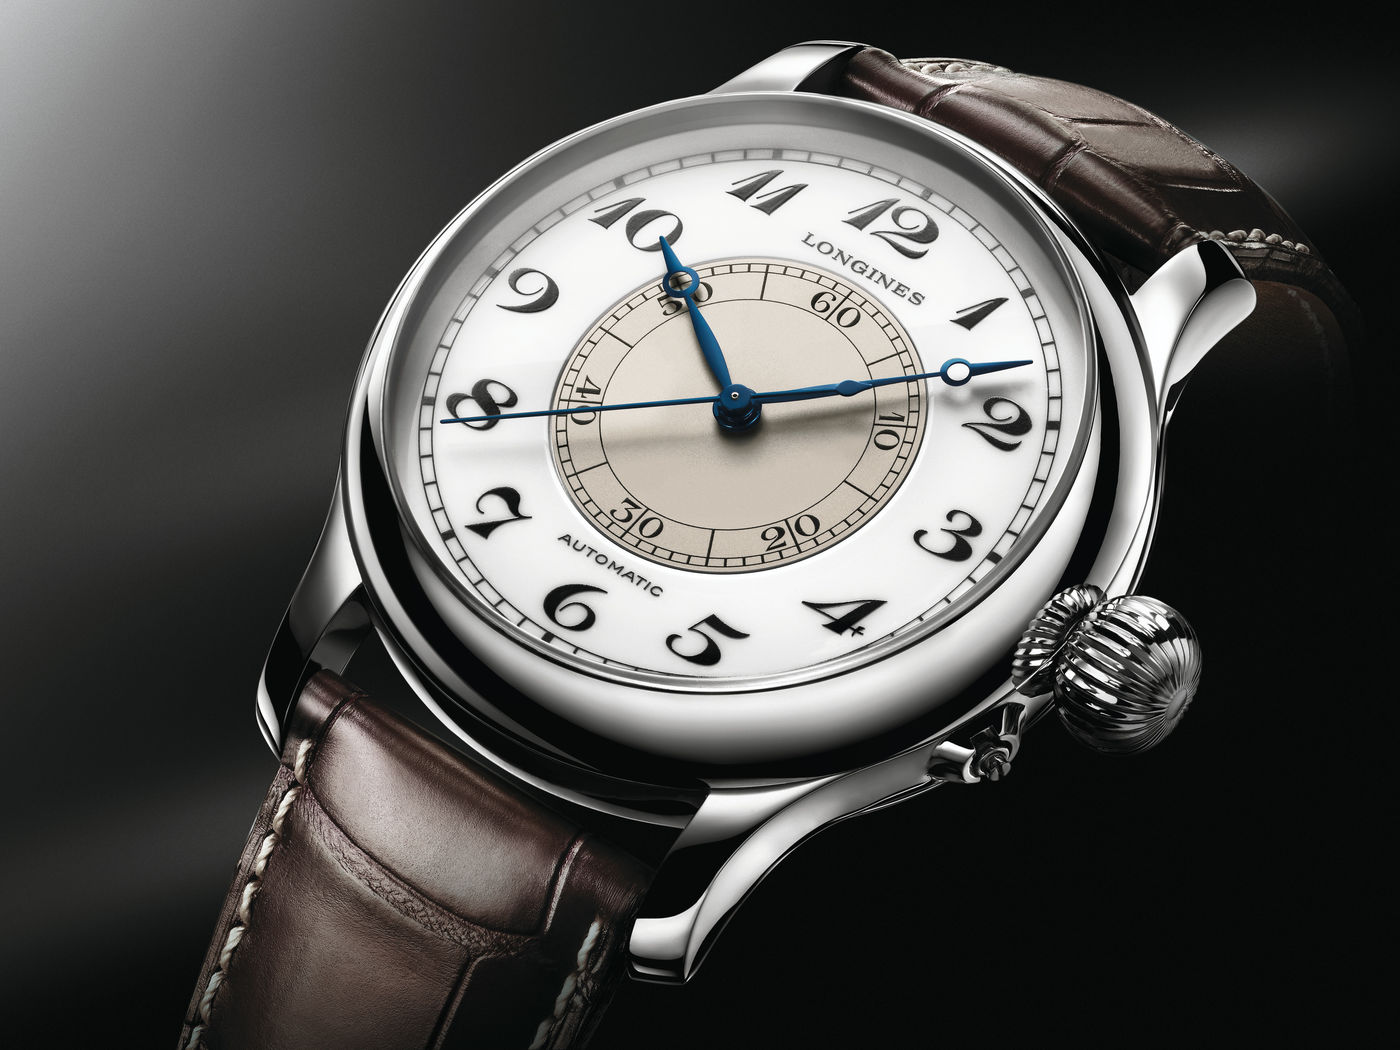 Longines The Longines Weems Second-Setting Watch Watch 1